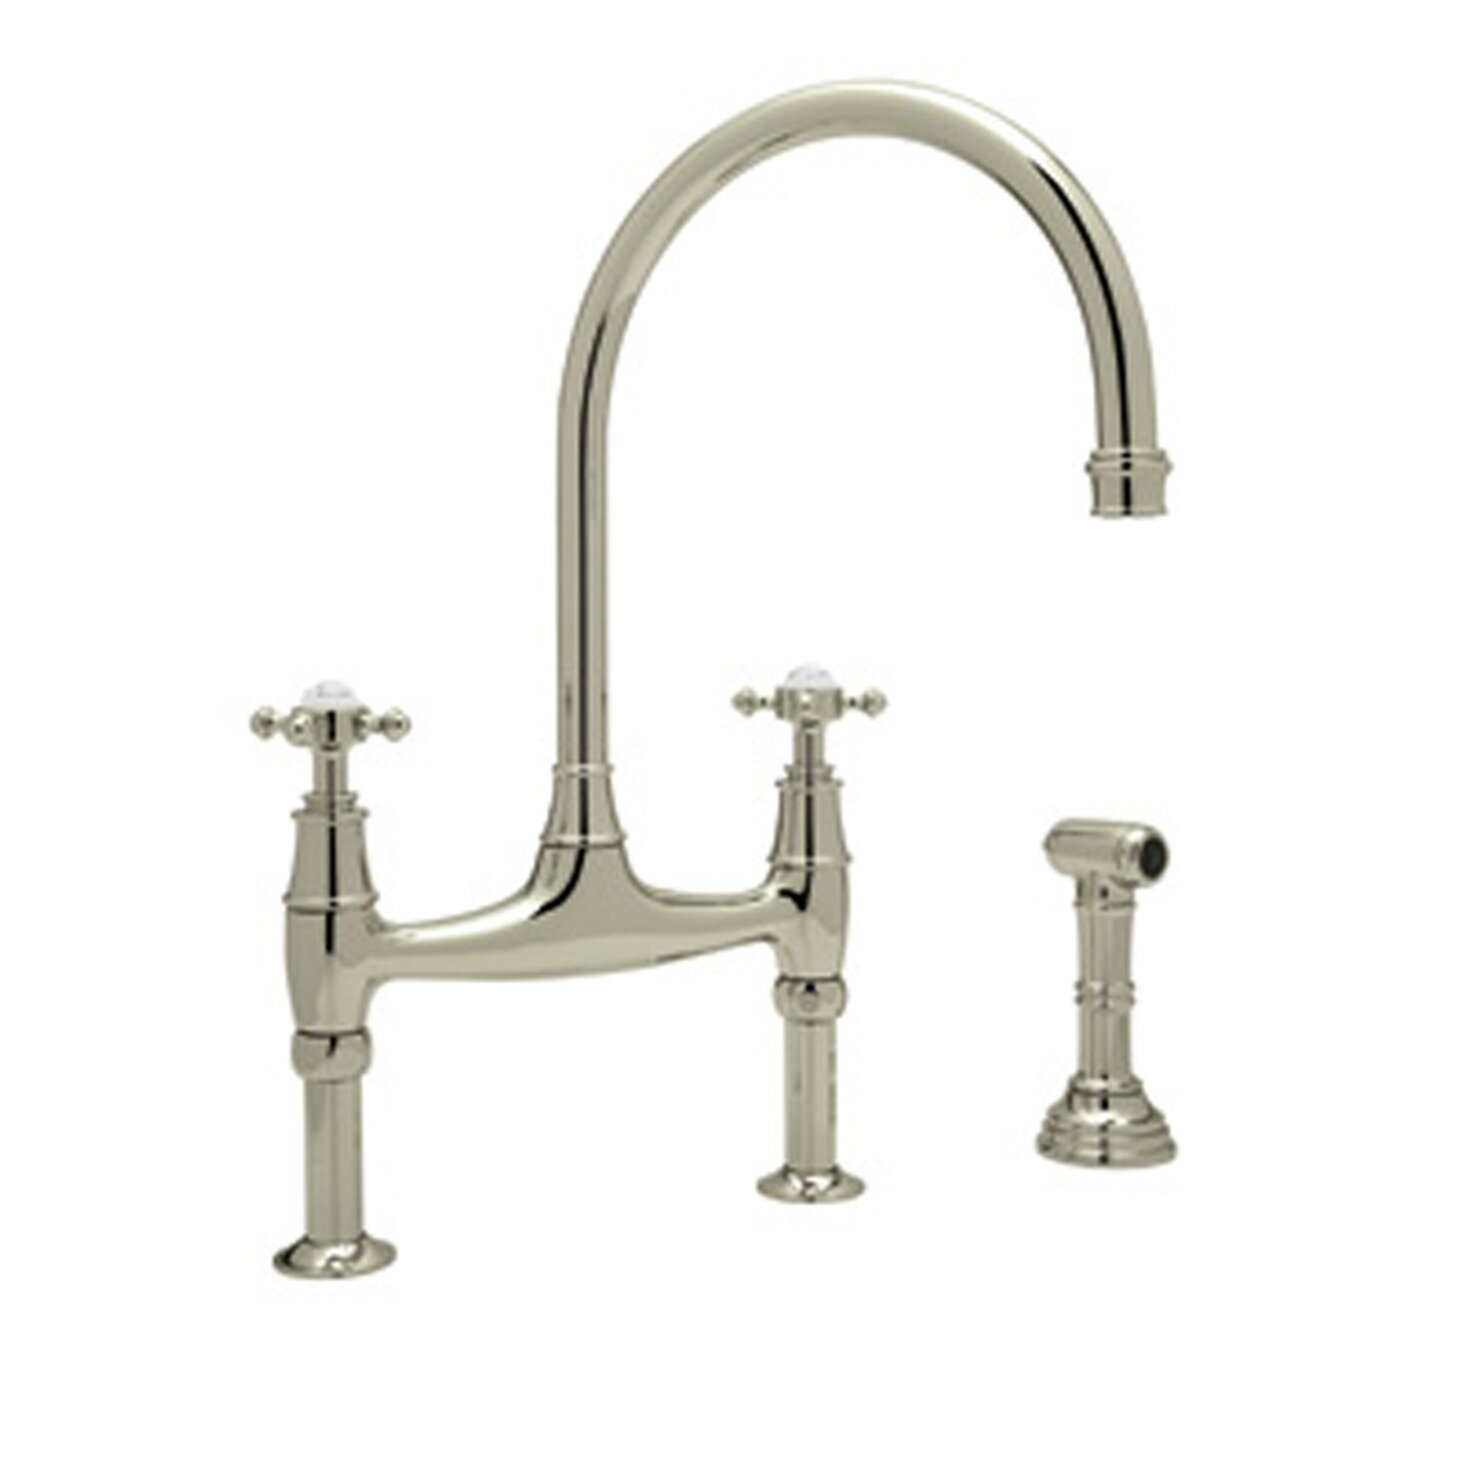 ... Rohl Bridge Faucet With Sidespray By Perrin And Rowe Double Handle Deck  Mount Kitchen Faucet ...